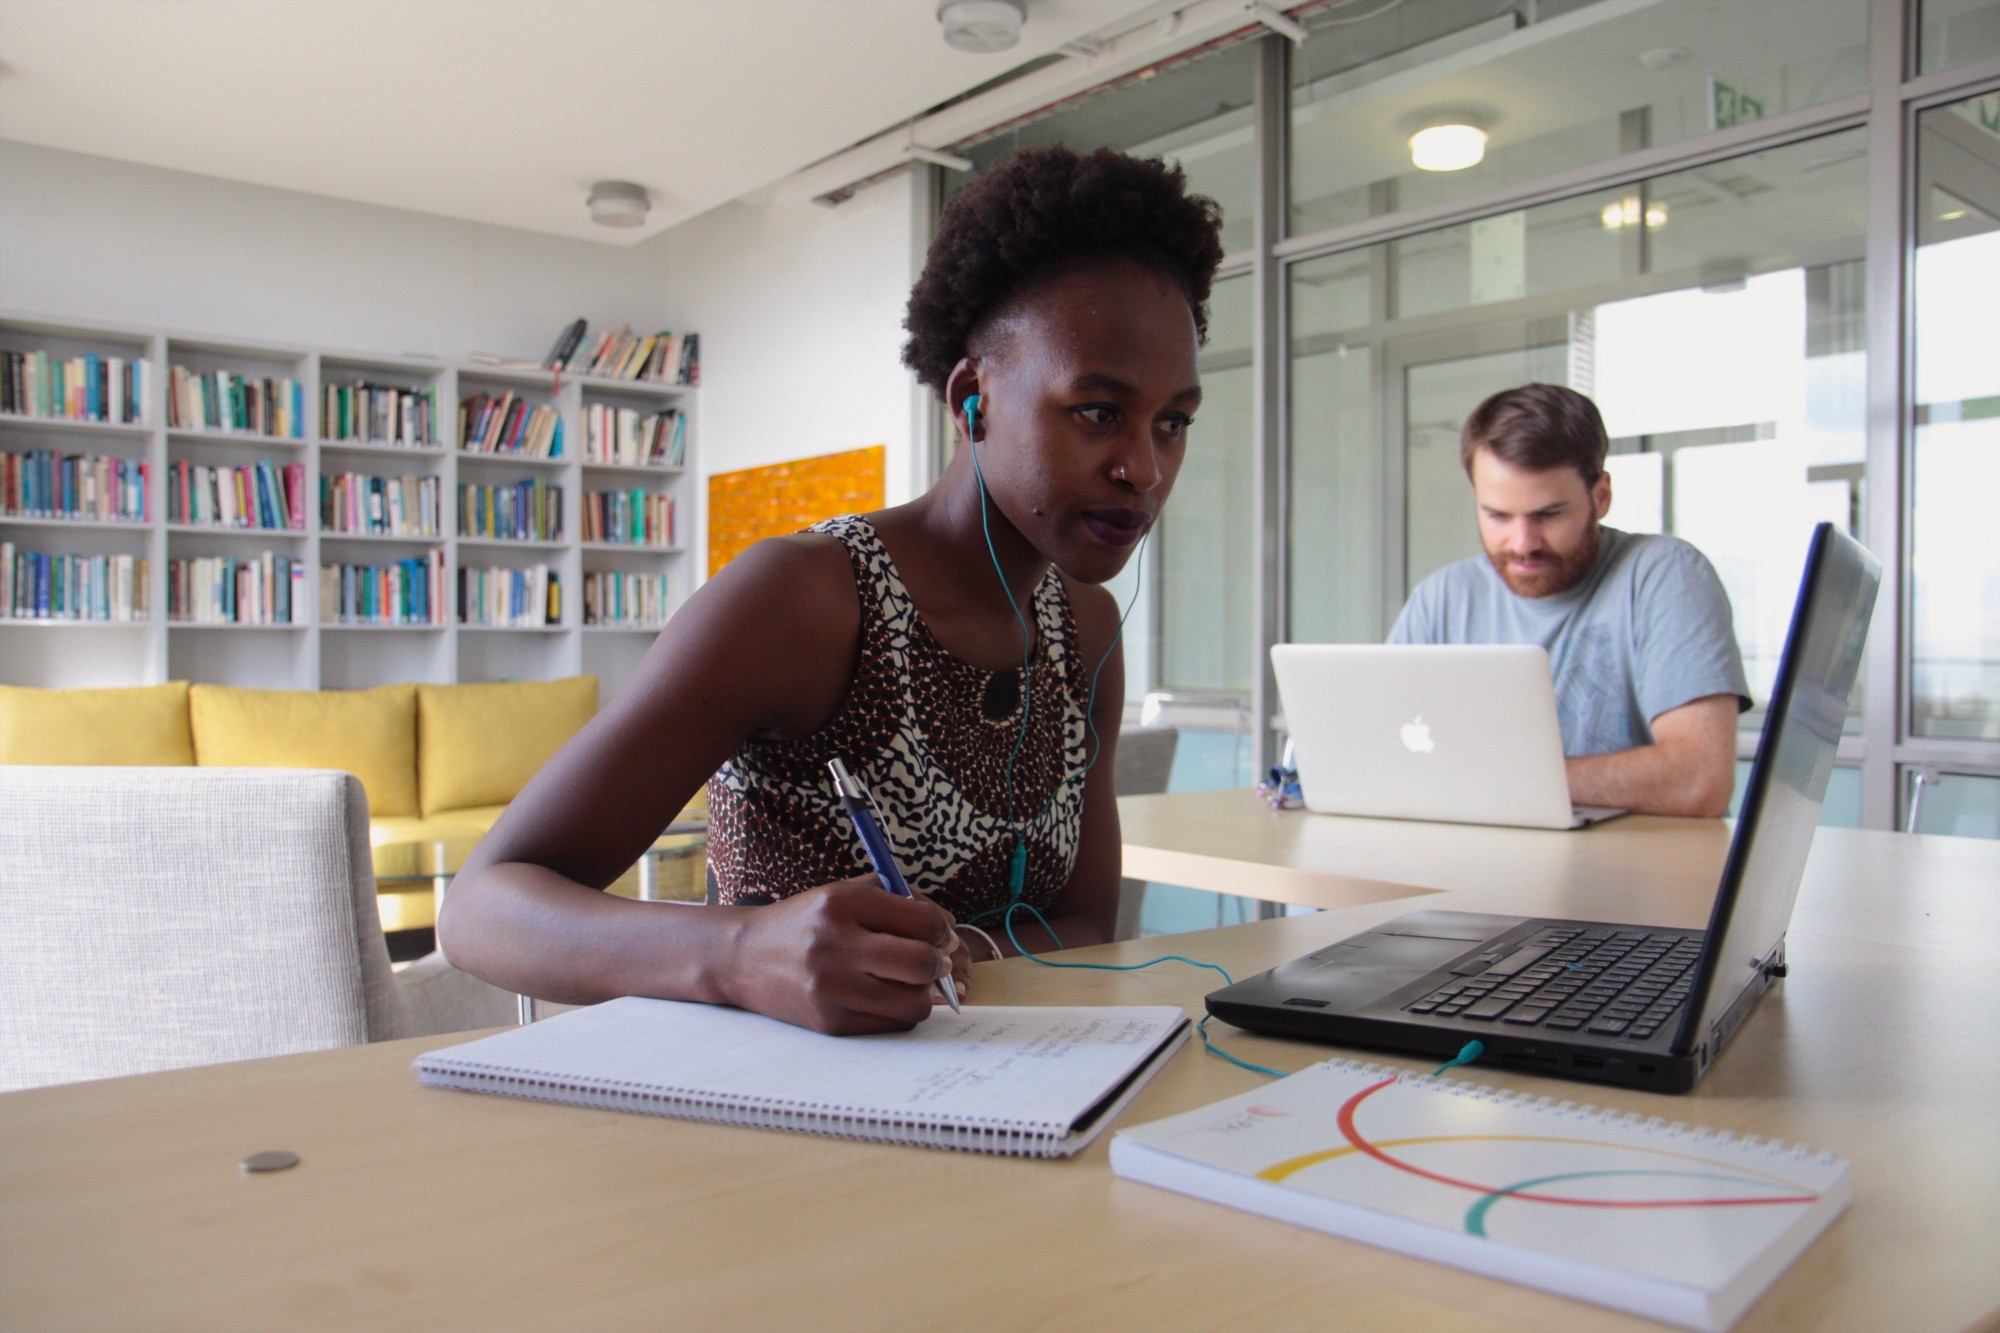 African woman taking notes in a notebook while watching a video on her laptop. White male working on laptop in the background.